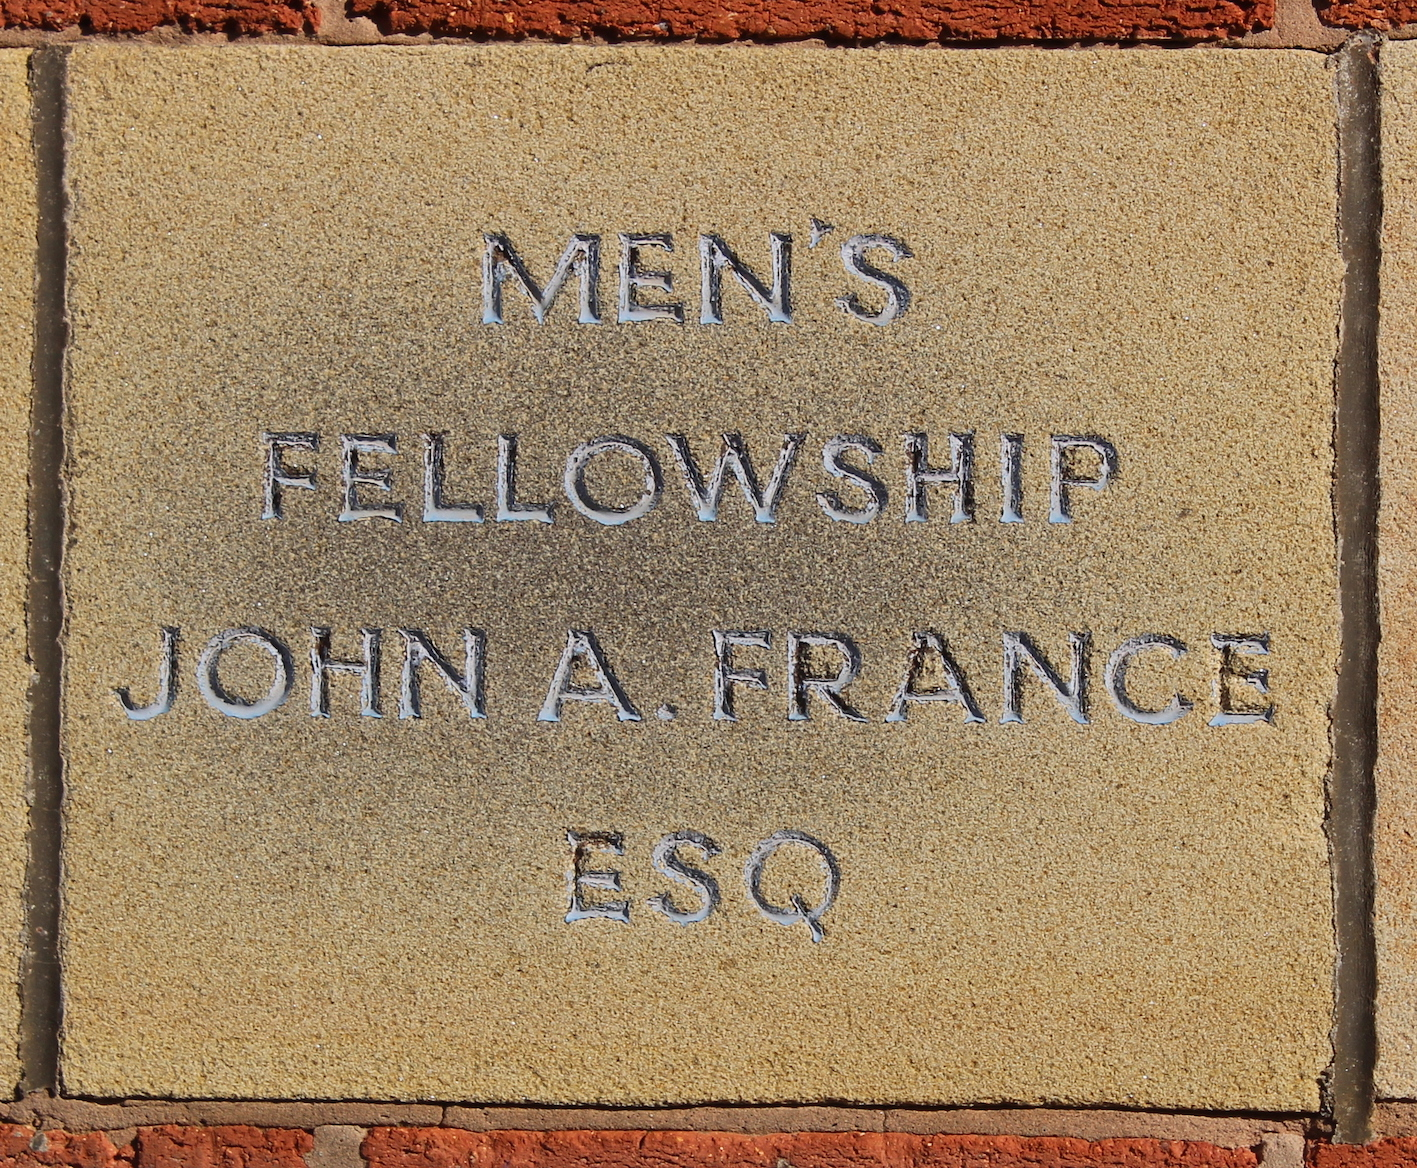 Memorial stone laid by John A France